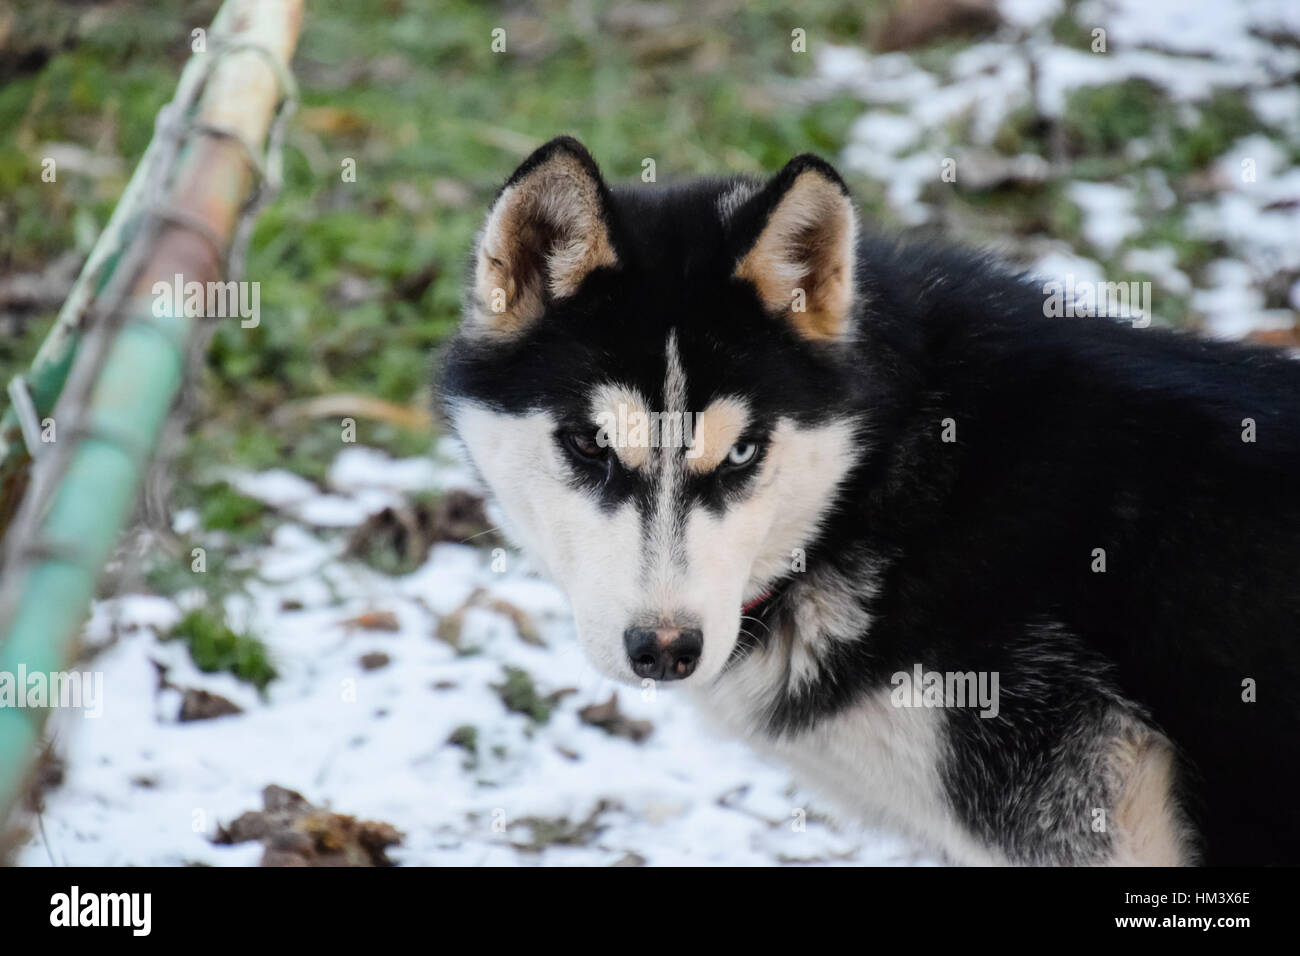 Husky Dog With Different Eyes Black And White Husky Brown And Blue